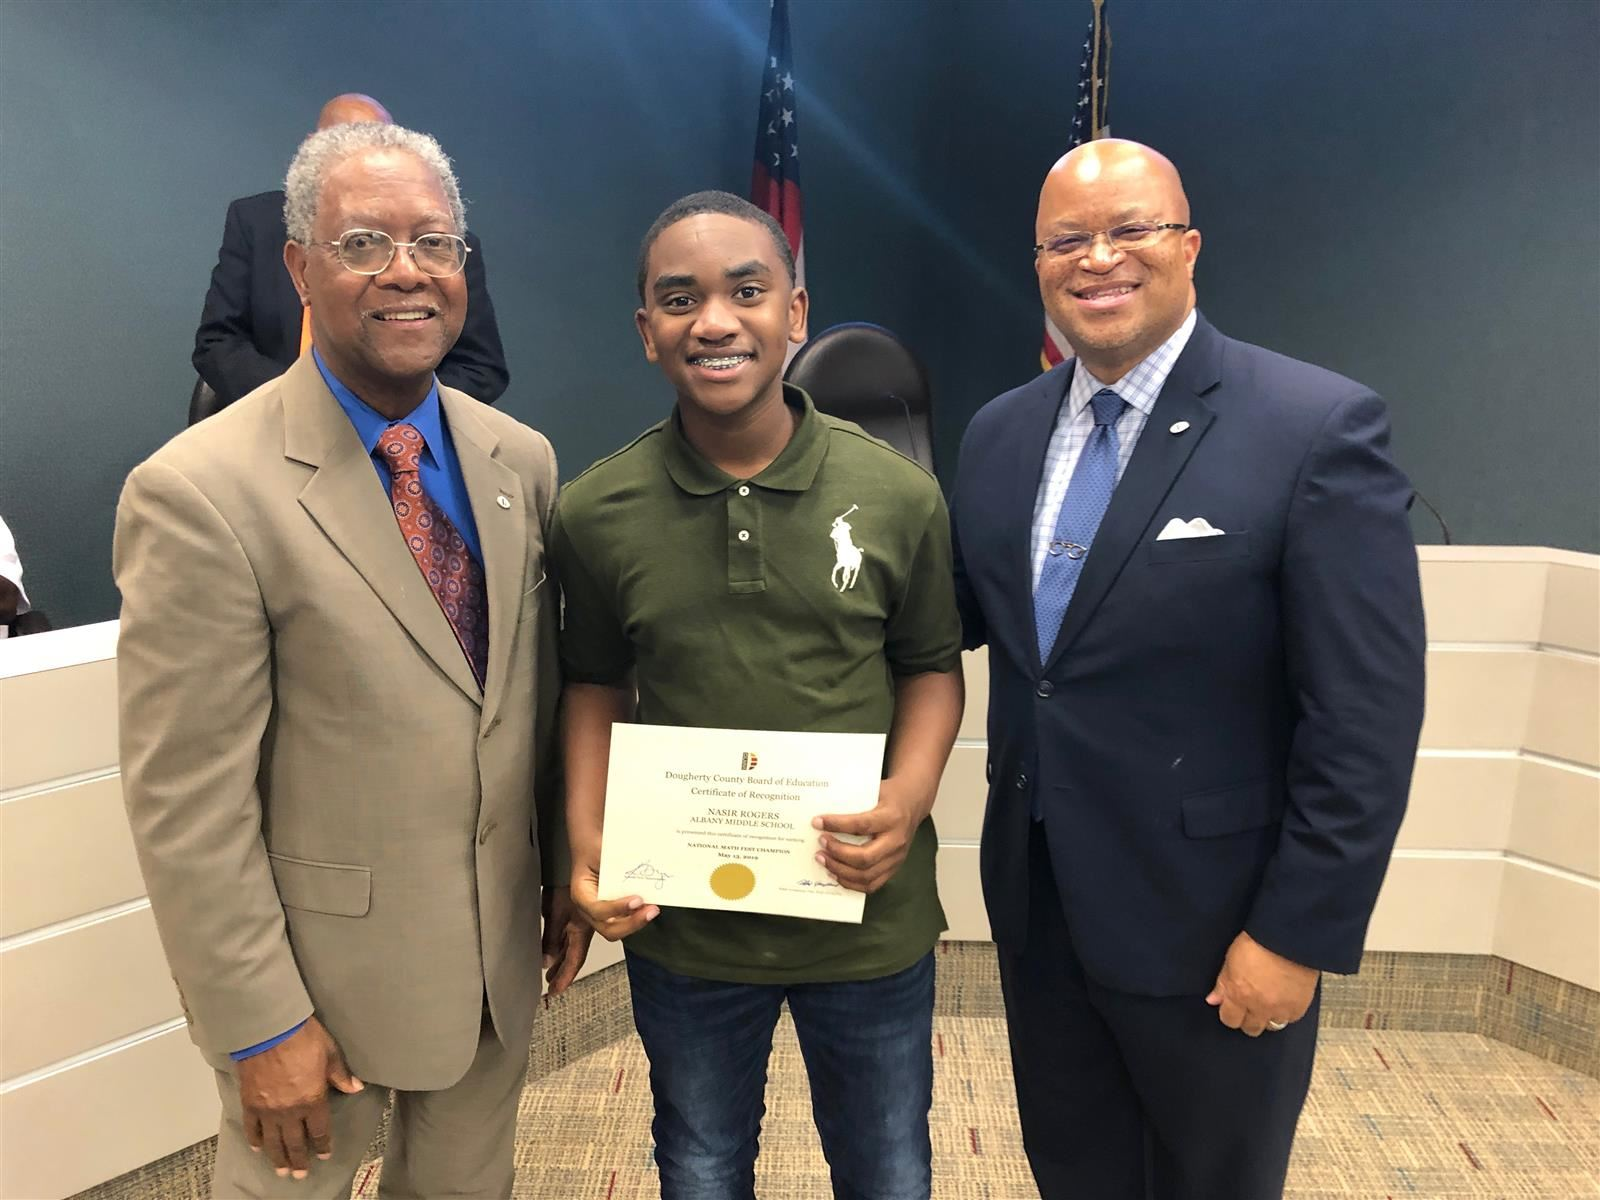 Nasir Rogers with Superintendent Kenneth Dyer and Vice Chair Dr. Dean Phinazee